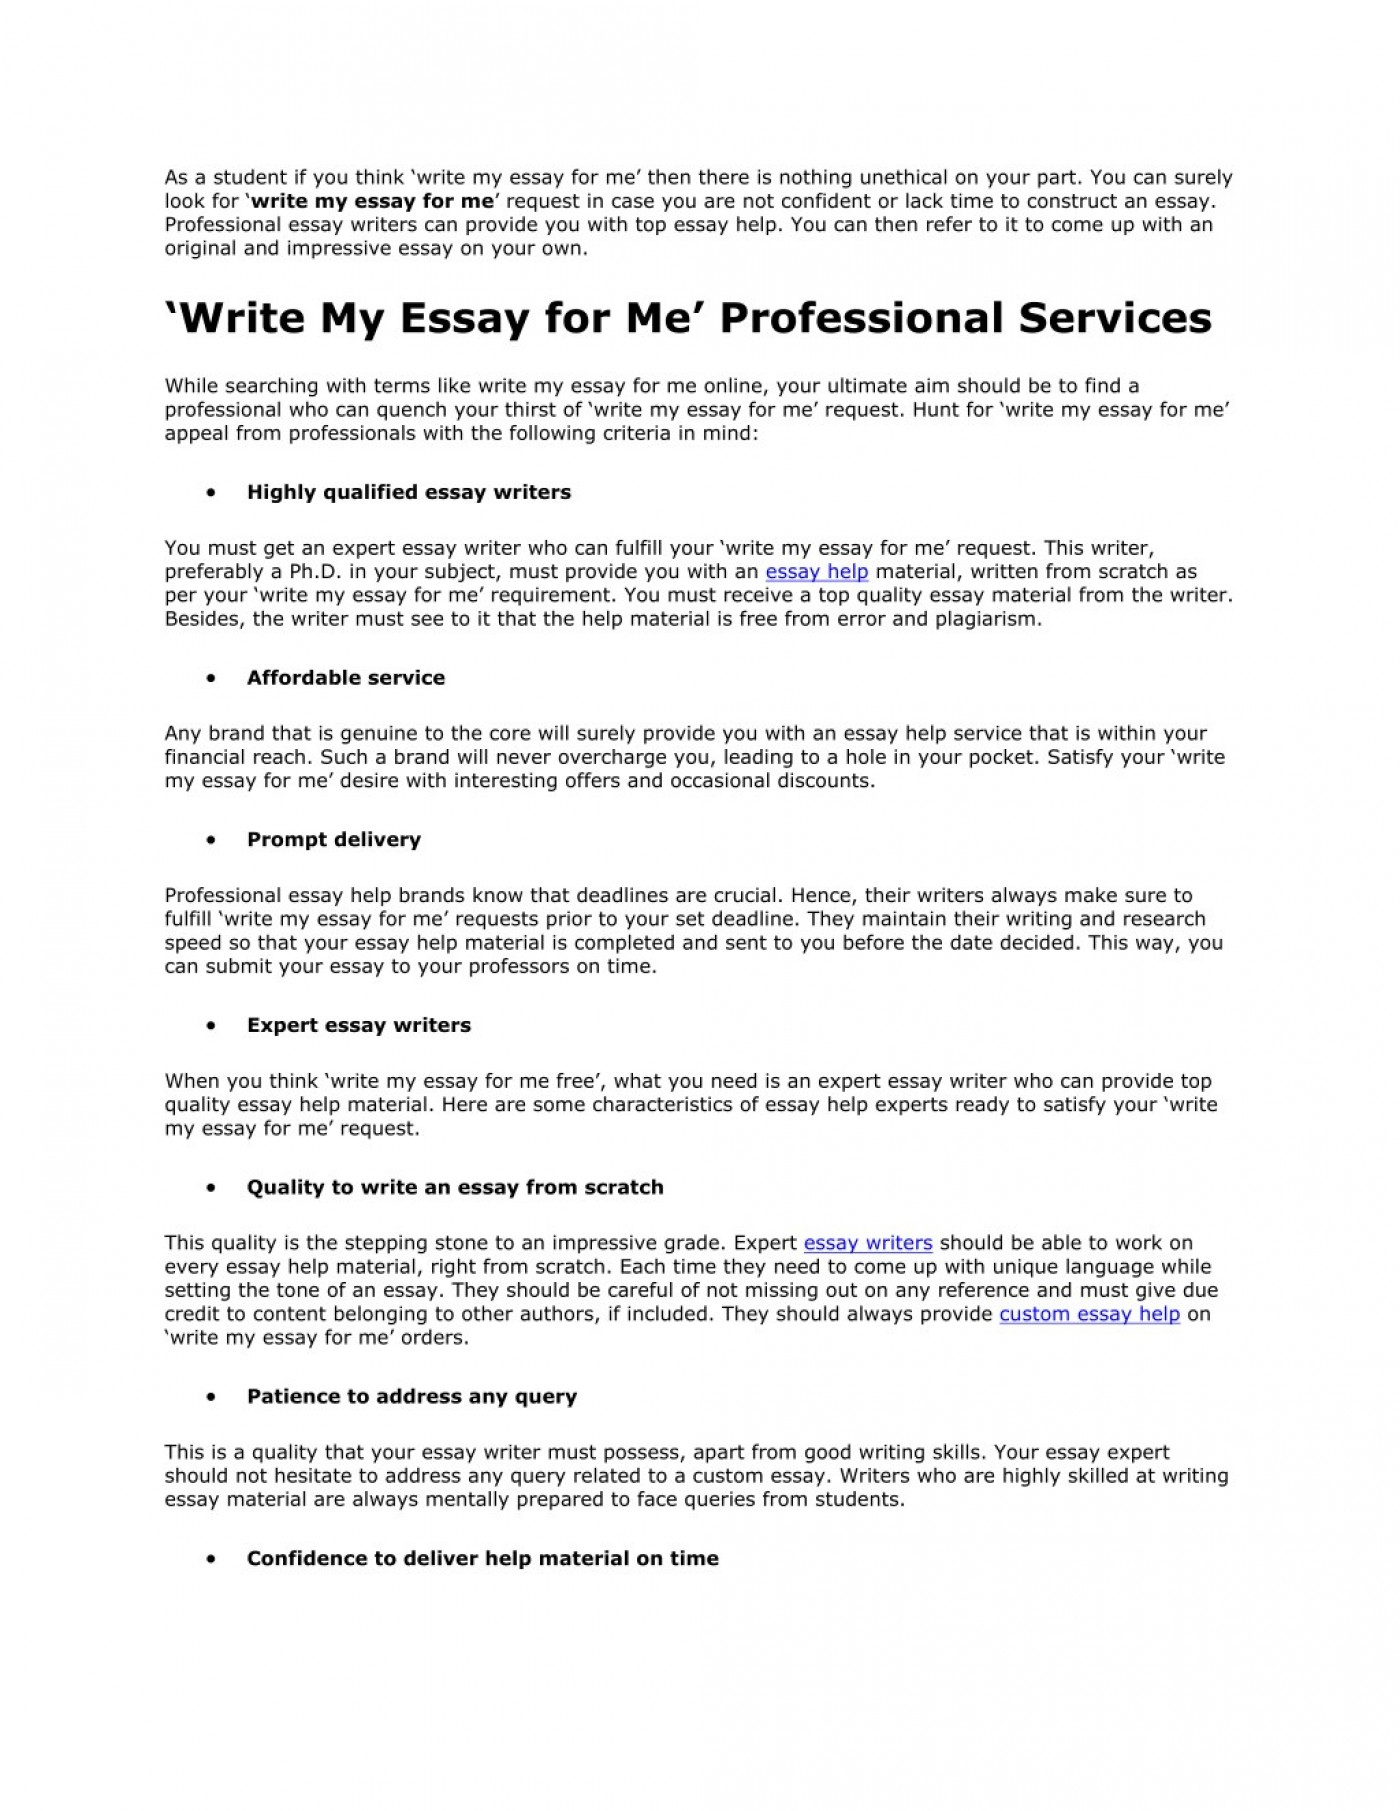 017 Write My Essay For Me Example As Student If You Think Surprising Generator 4 Me.org College Free 1400